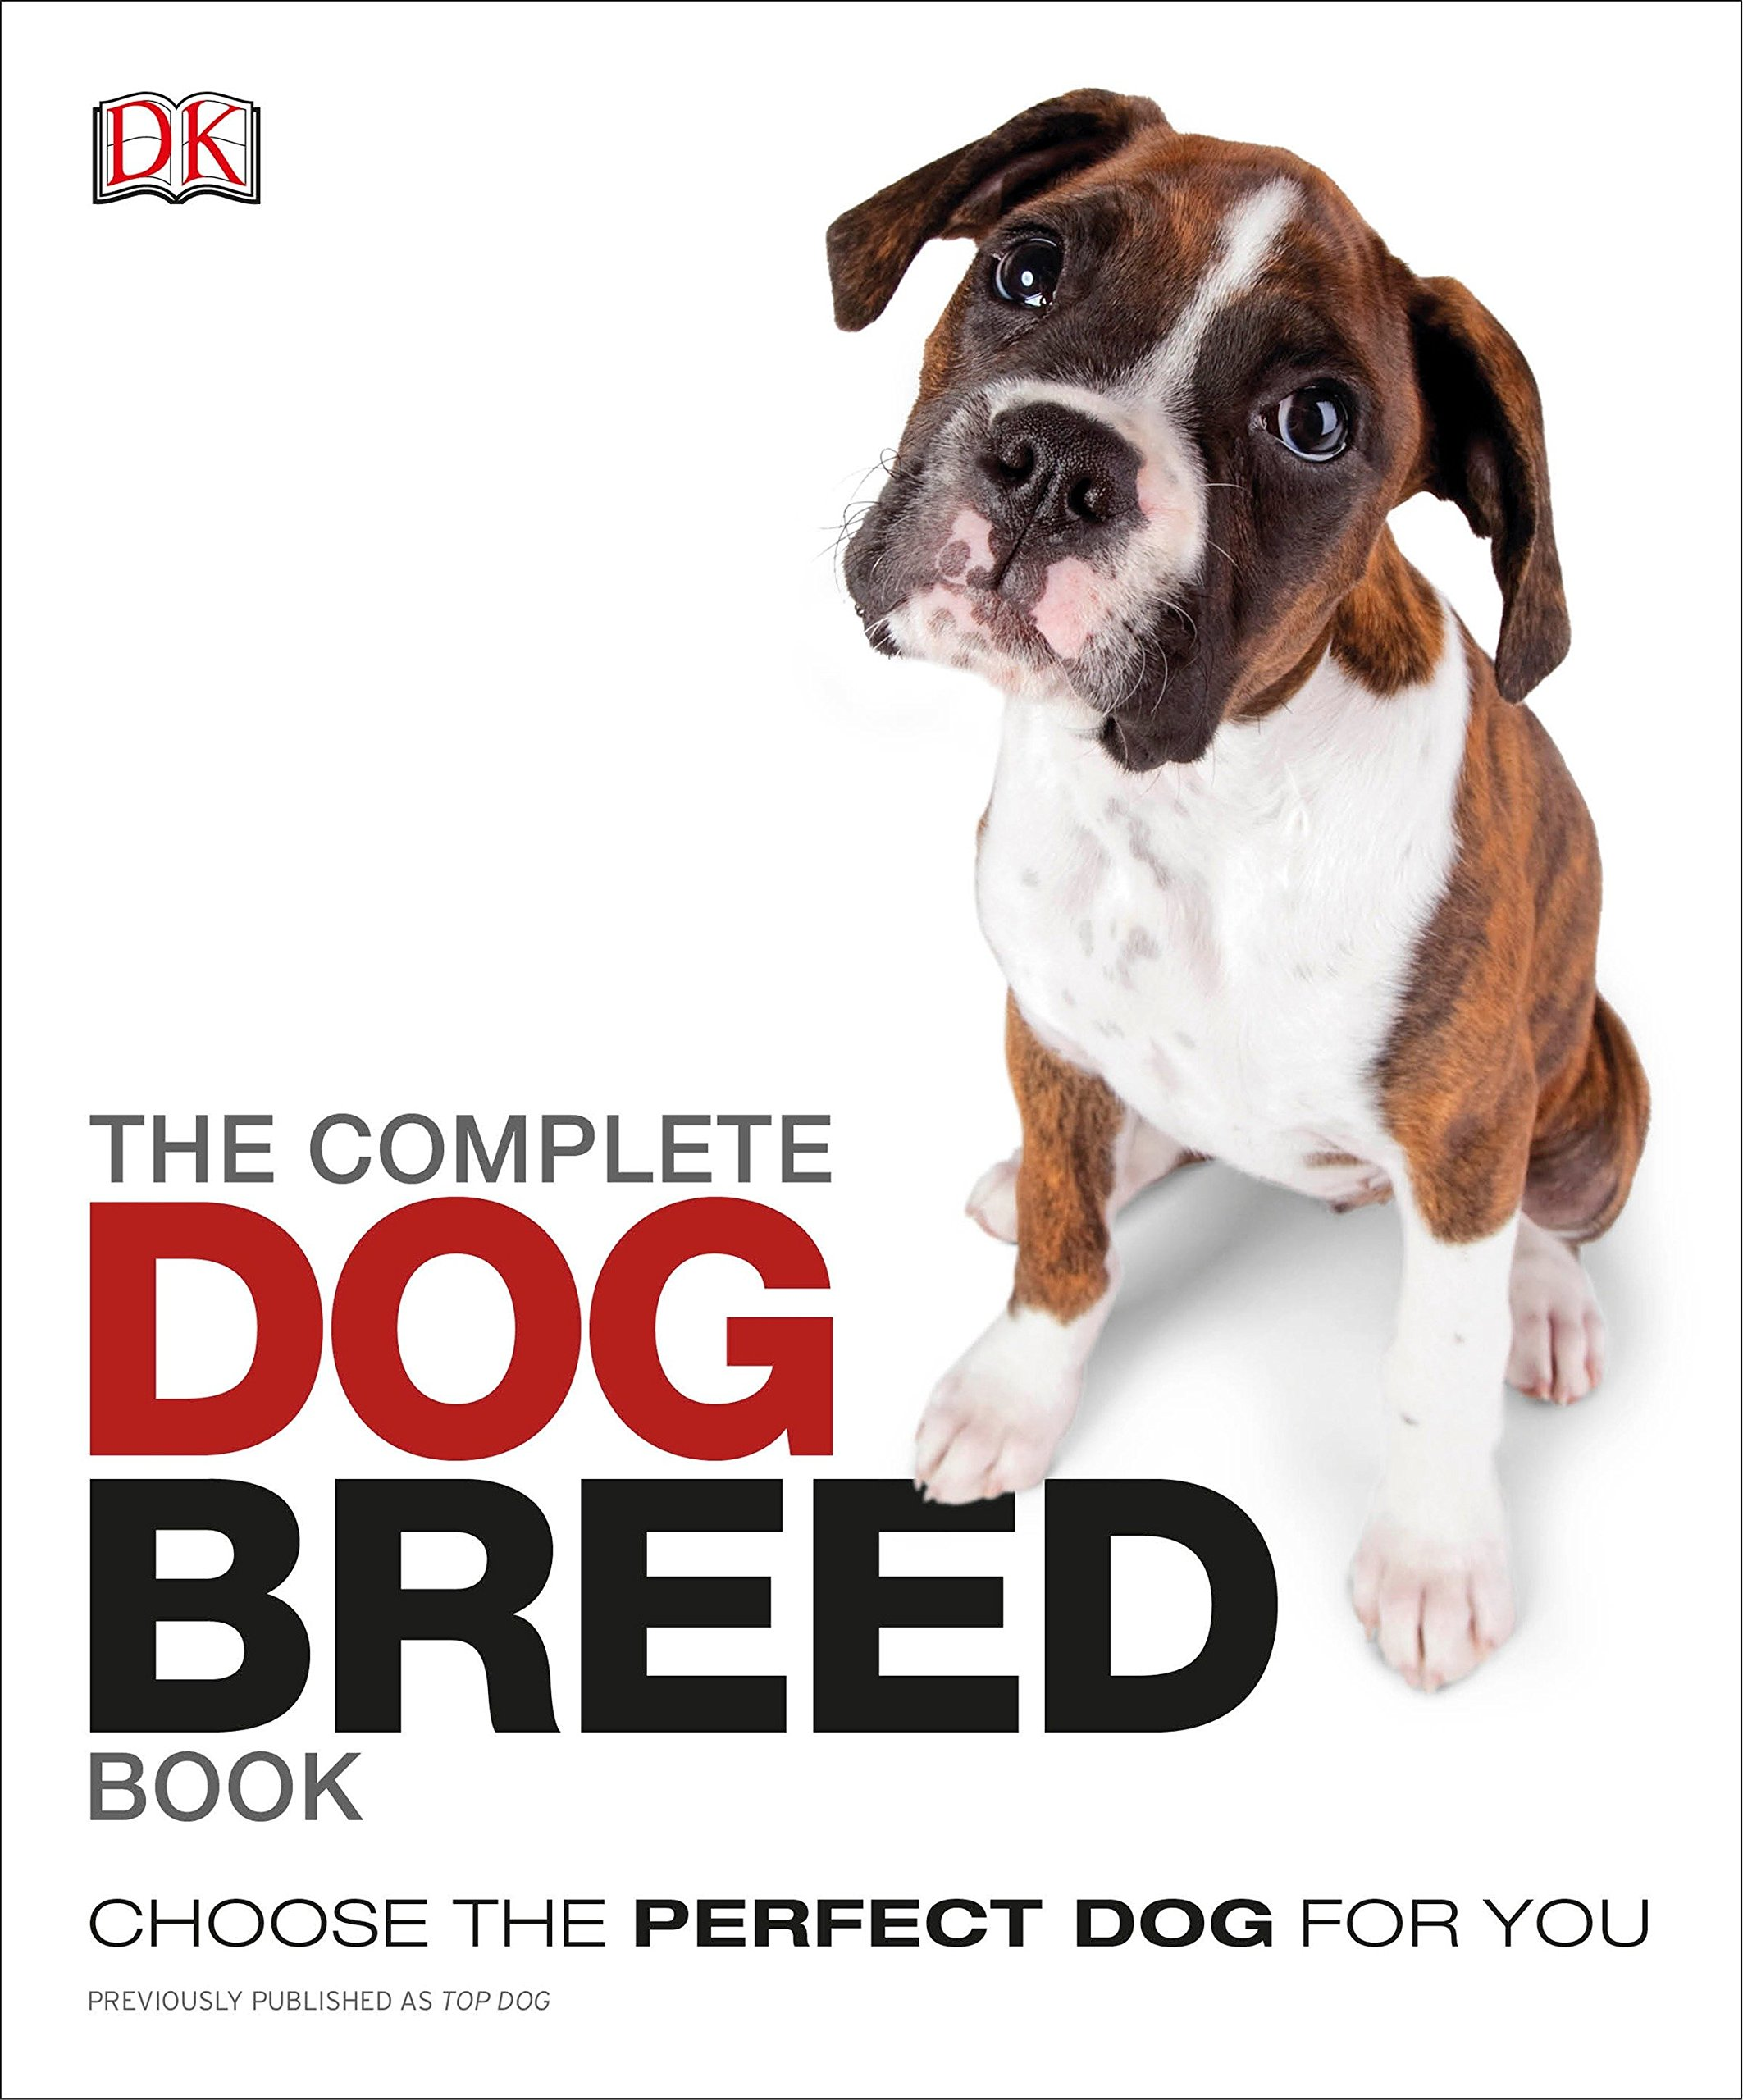 The Complete Dog Breed Book: Choose the Perfect Dog for You by DK Publishing Dorling Kindersley